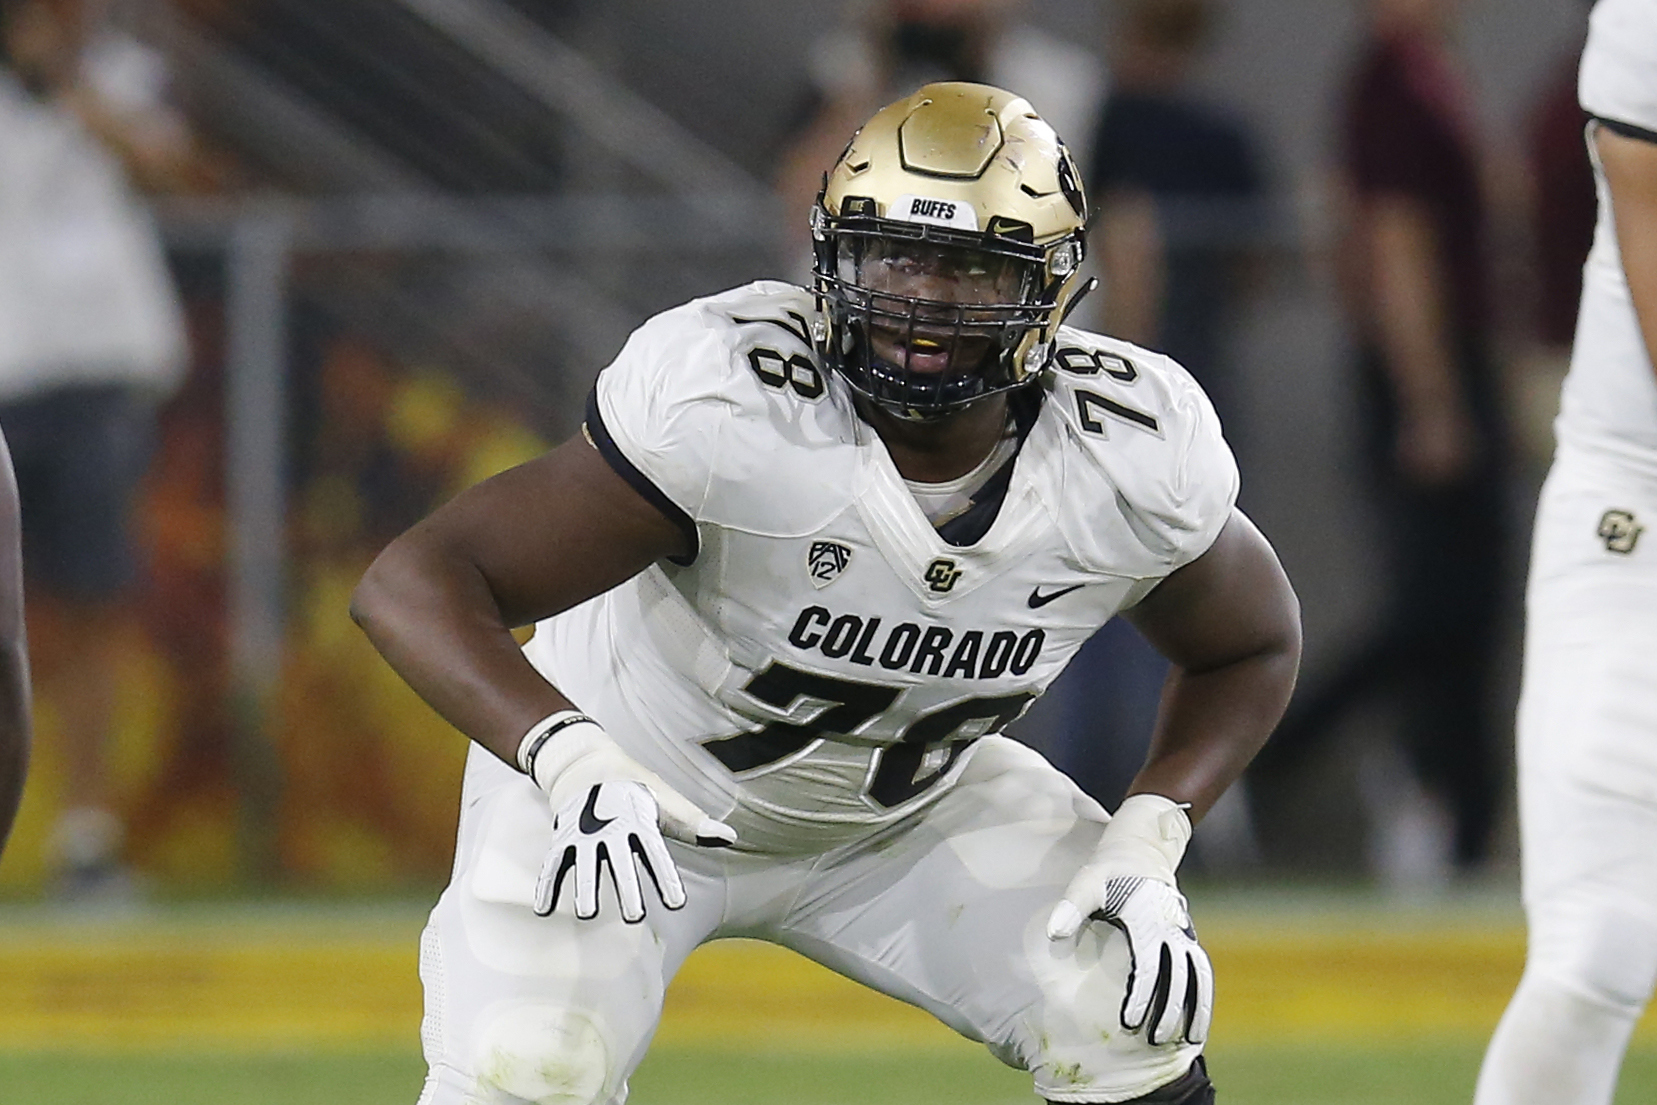 Patriots draft William Sherman, offensive lineman from Colorado, in Round 6  (NFL Draft 2021) - masslive.com